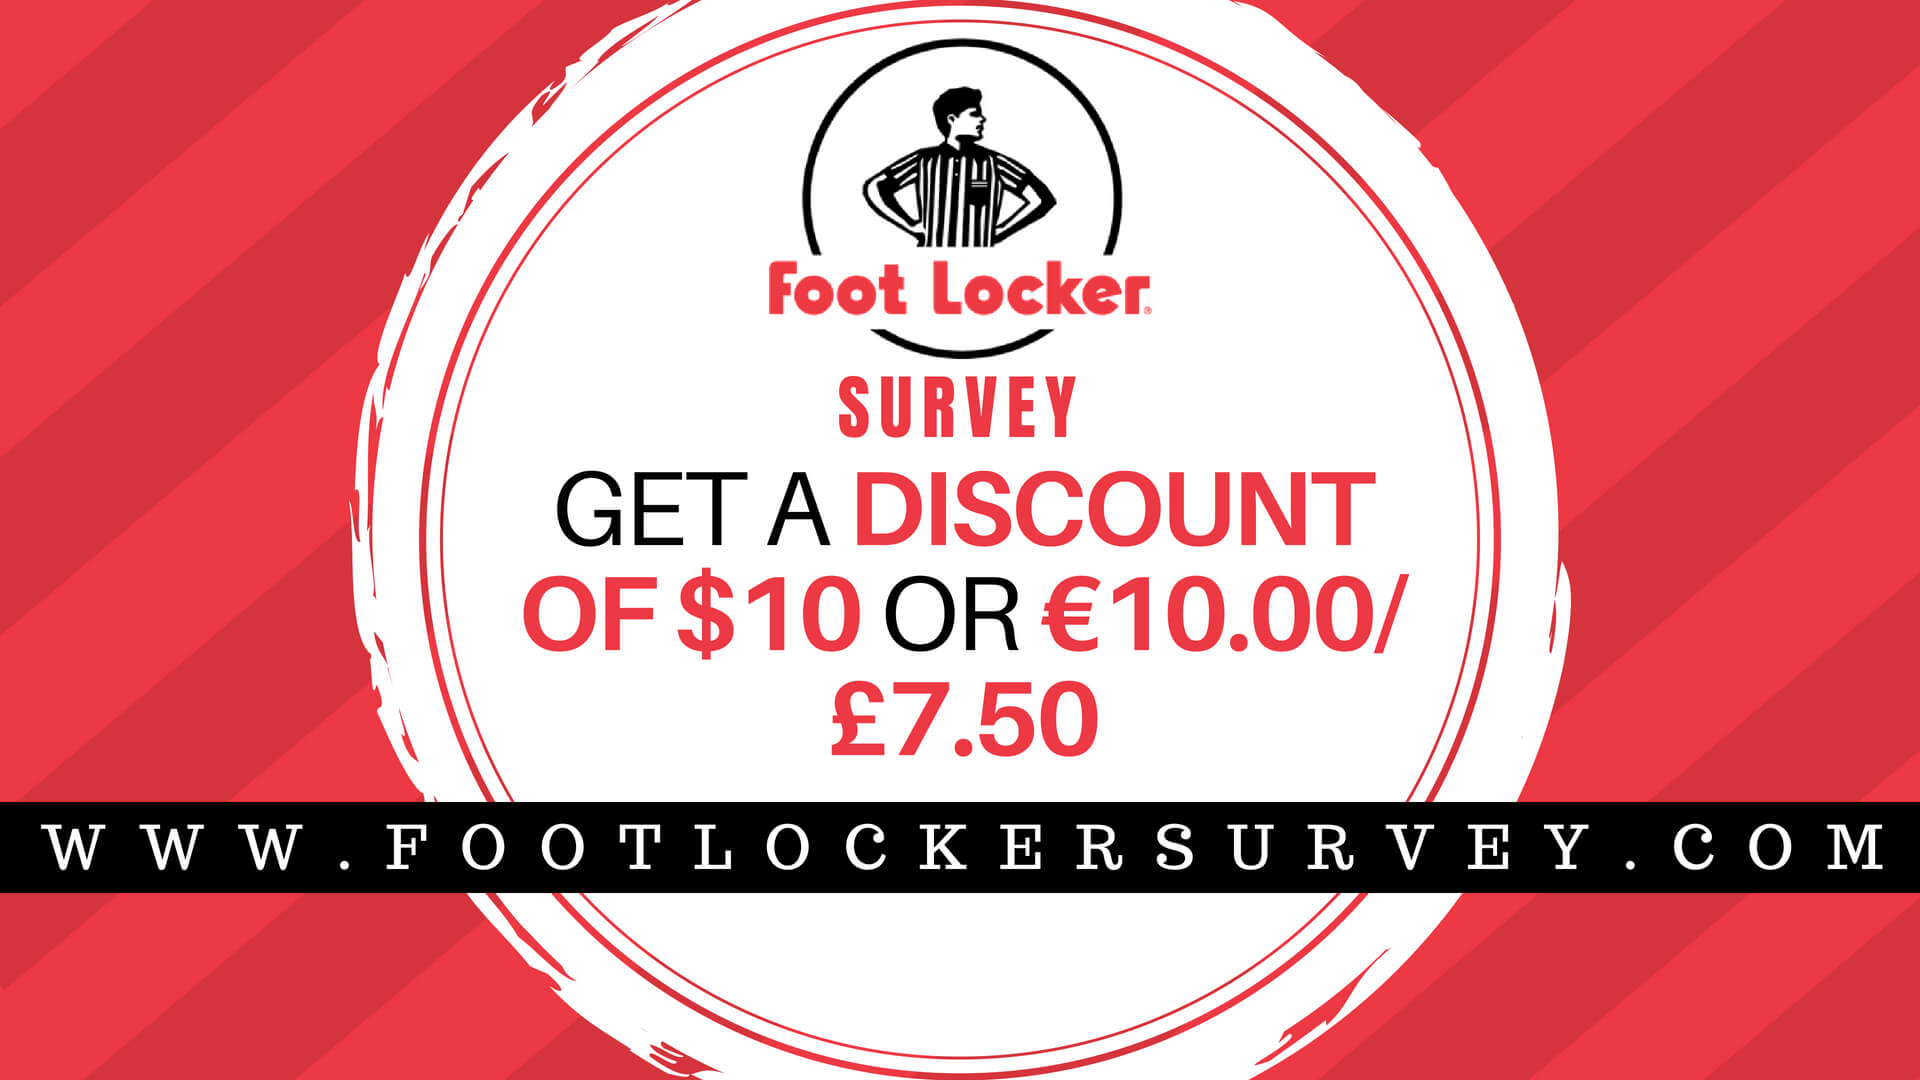 Foot locker Survey | Win $10 Discount Coupon at www.footlockersurvey.com